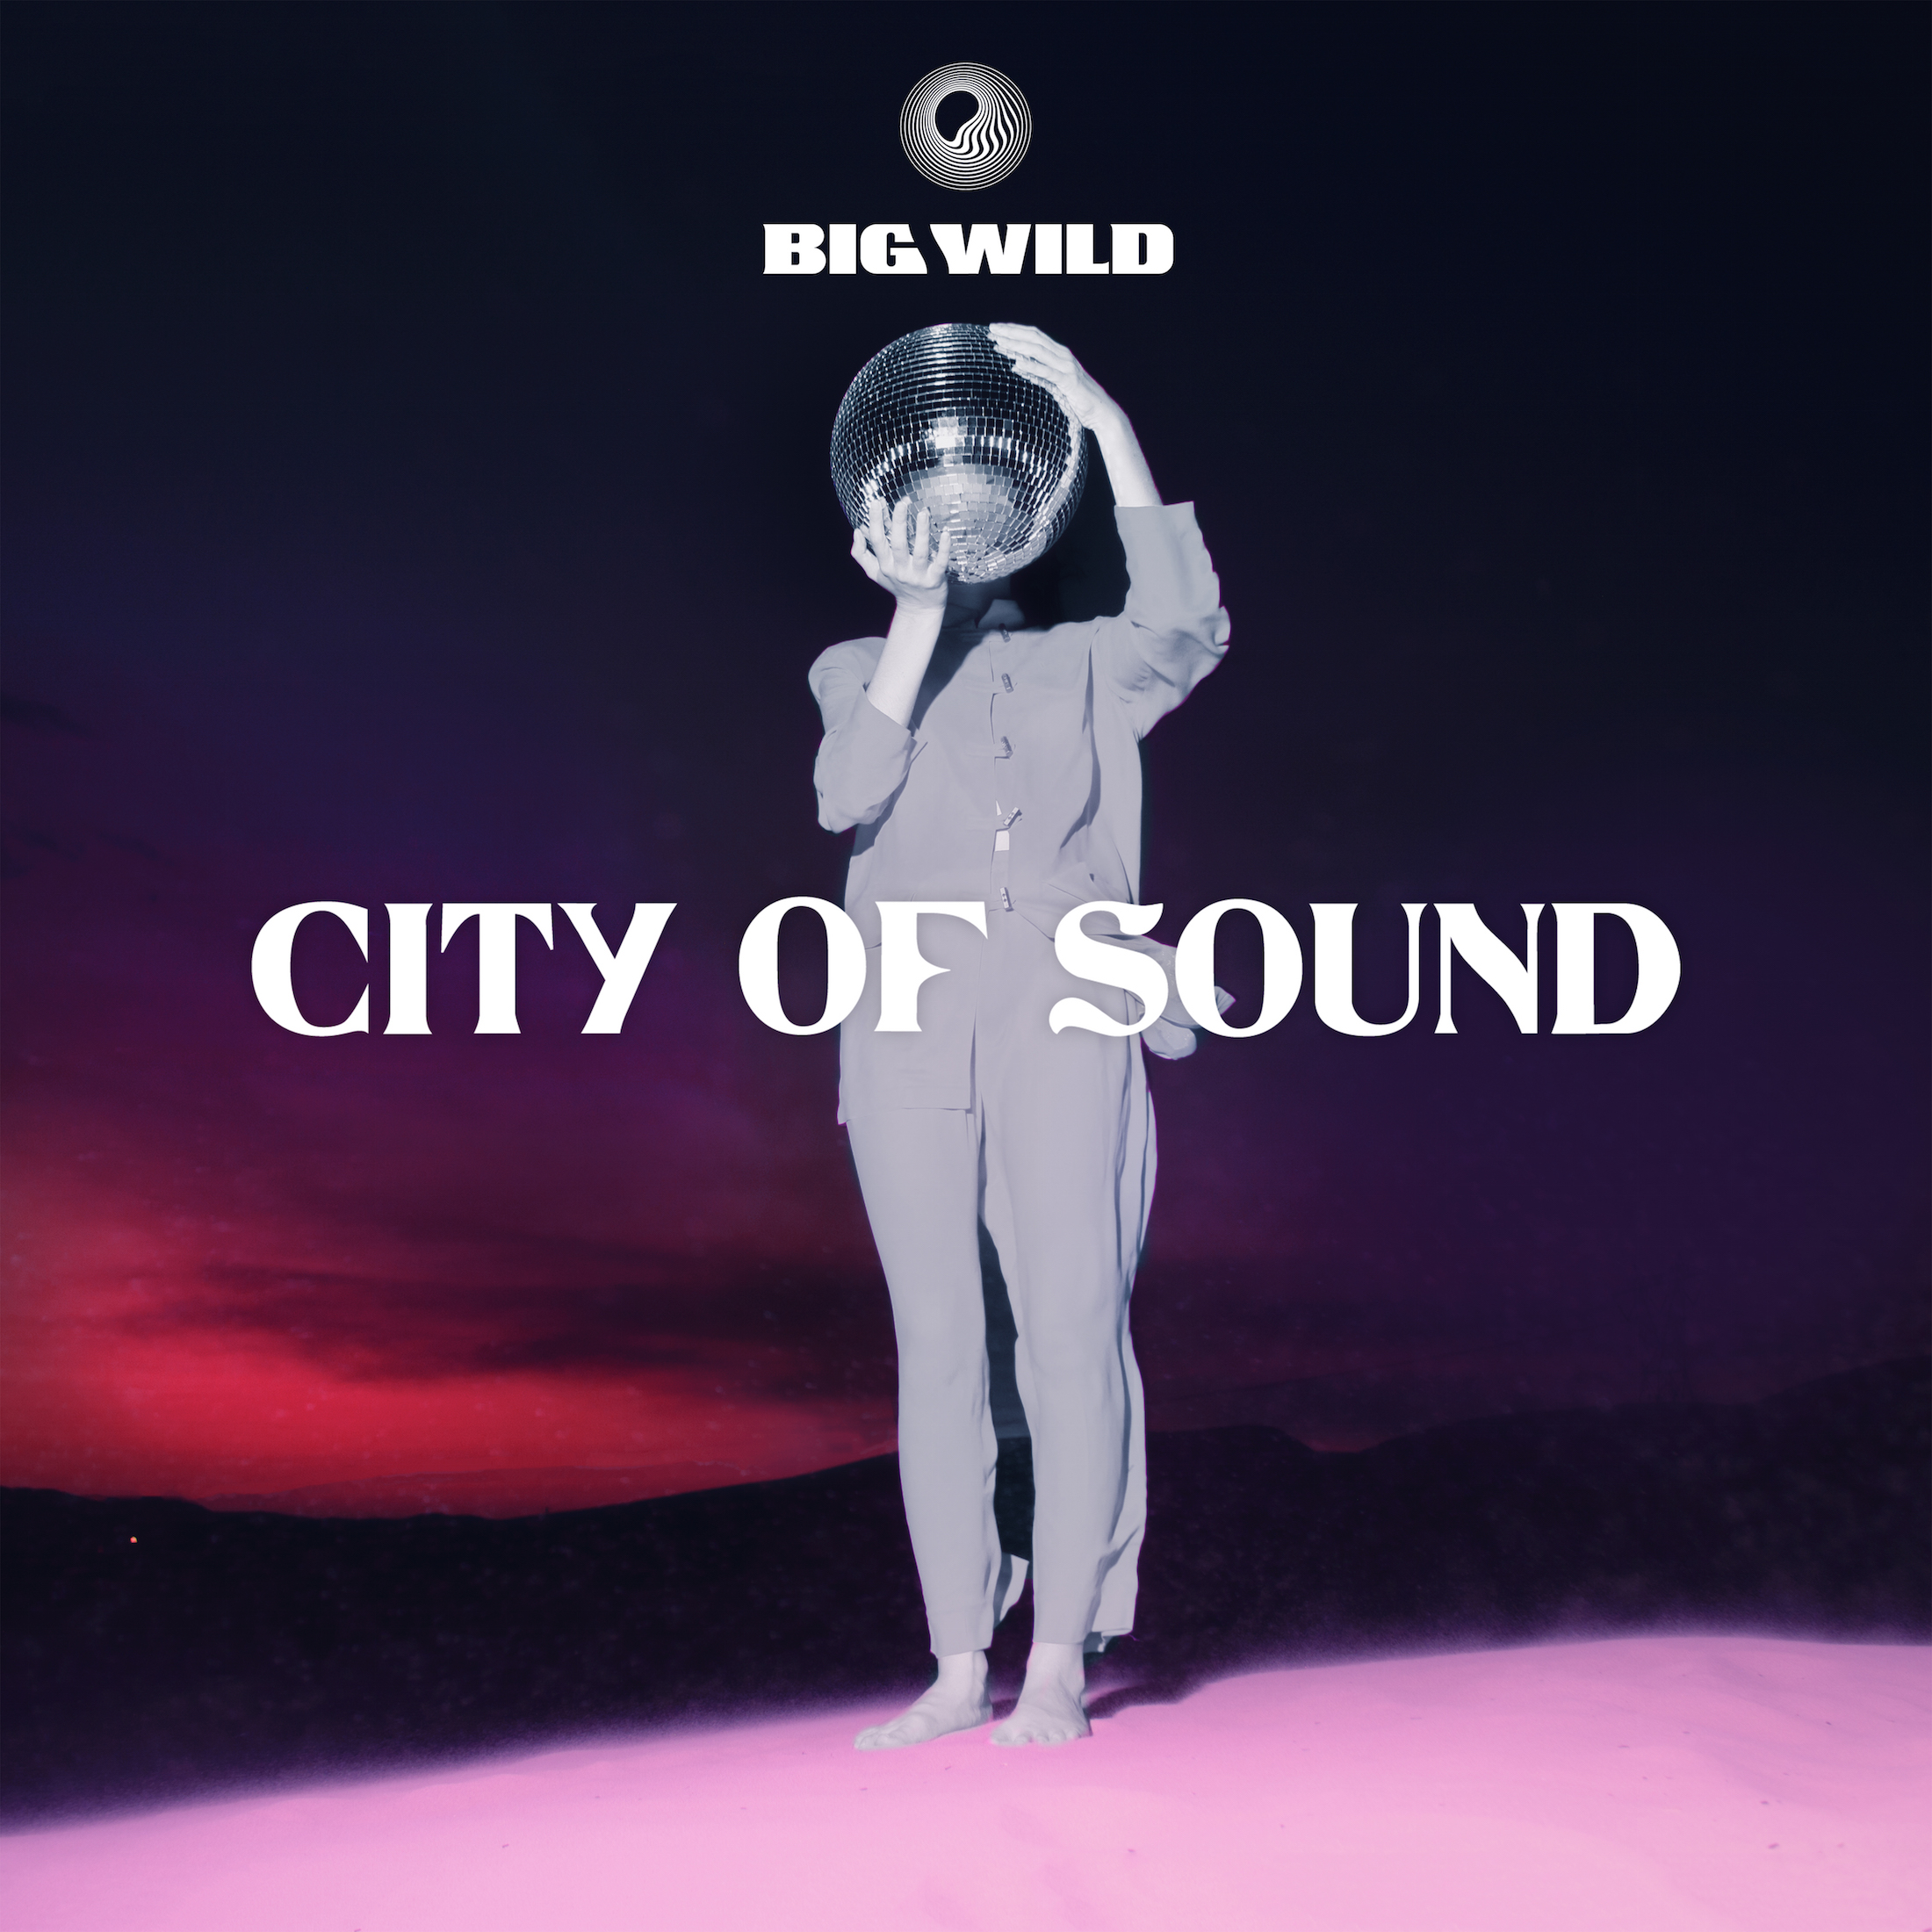 City of Sound_Main Album Art_FINAL.jpg